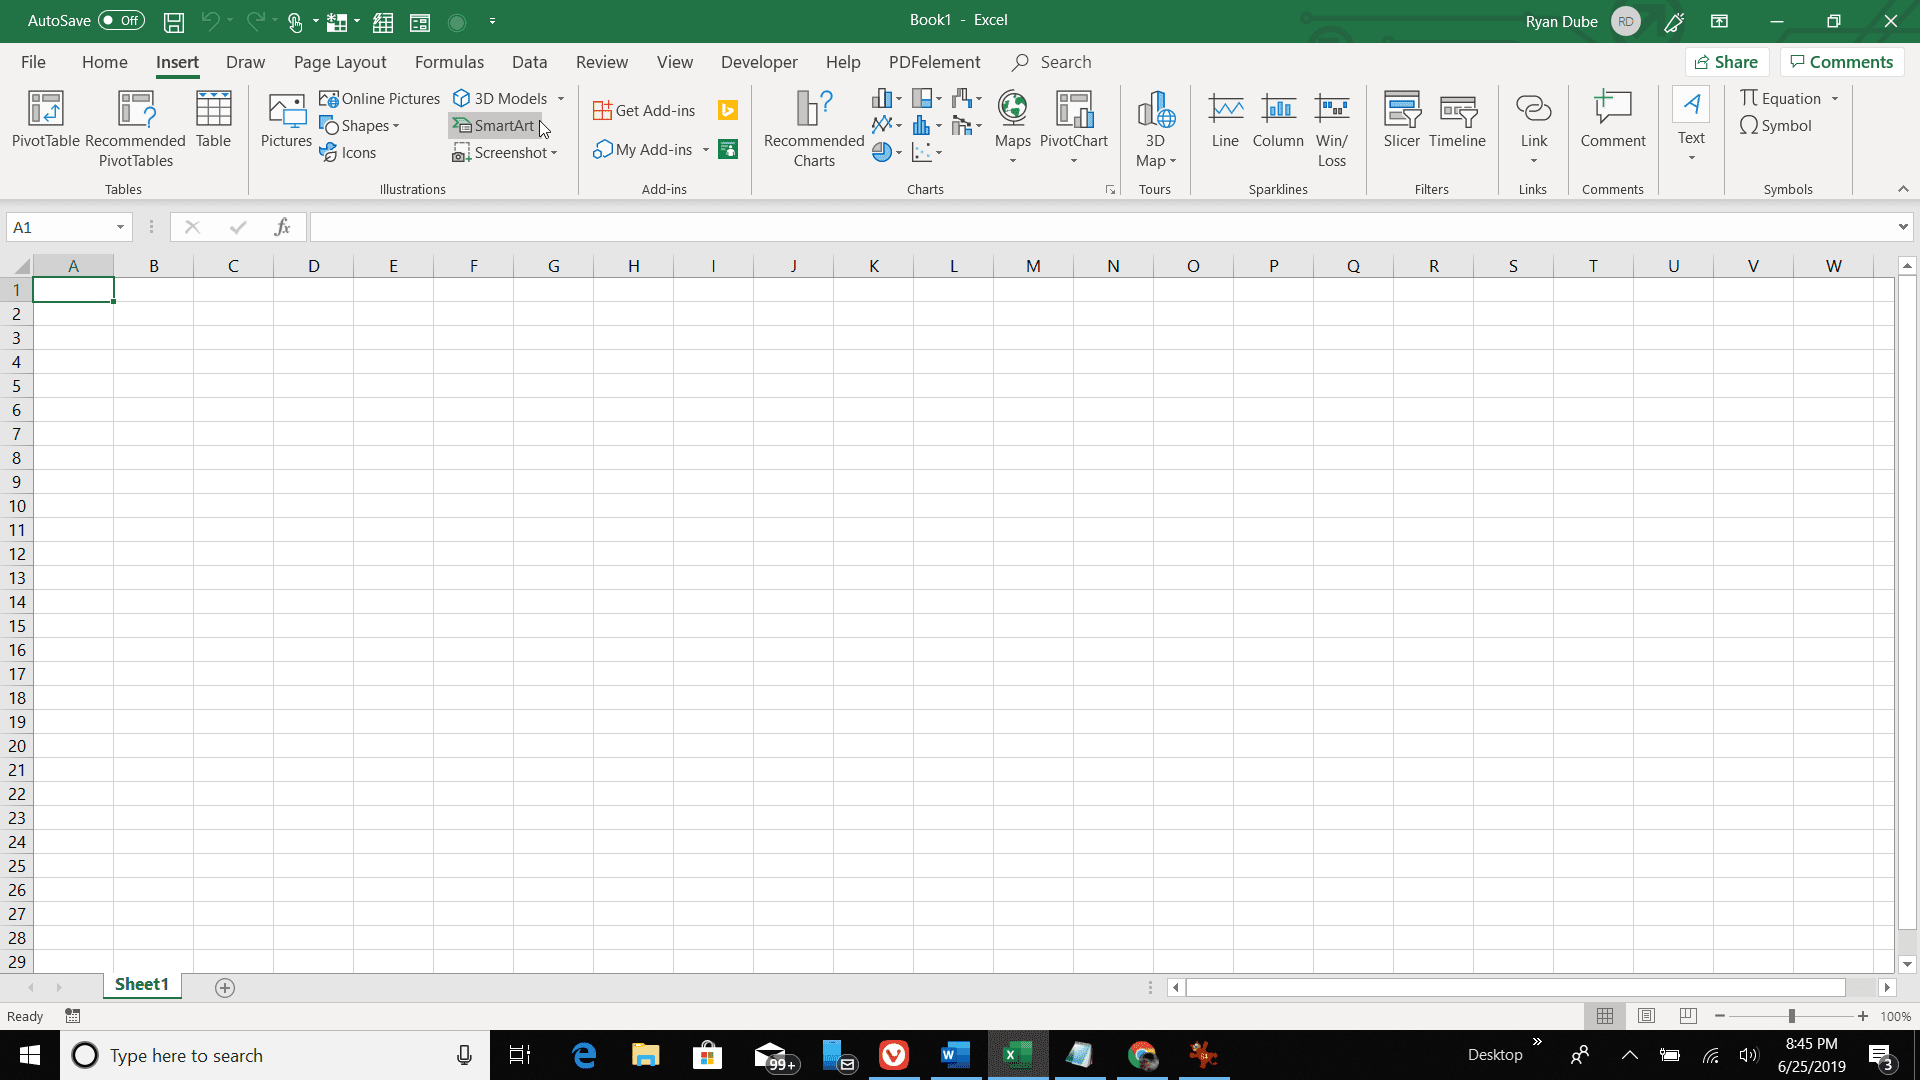 Learn How to Transform a Scatter Plot Into a Timeline in Excel